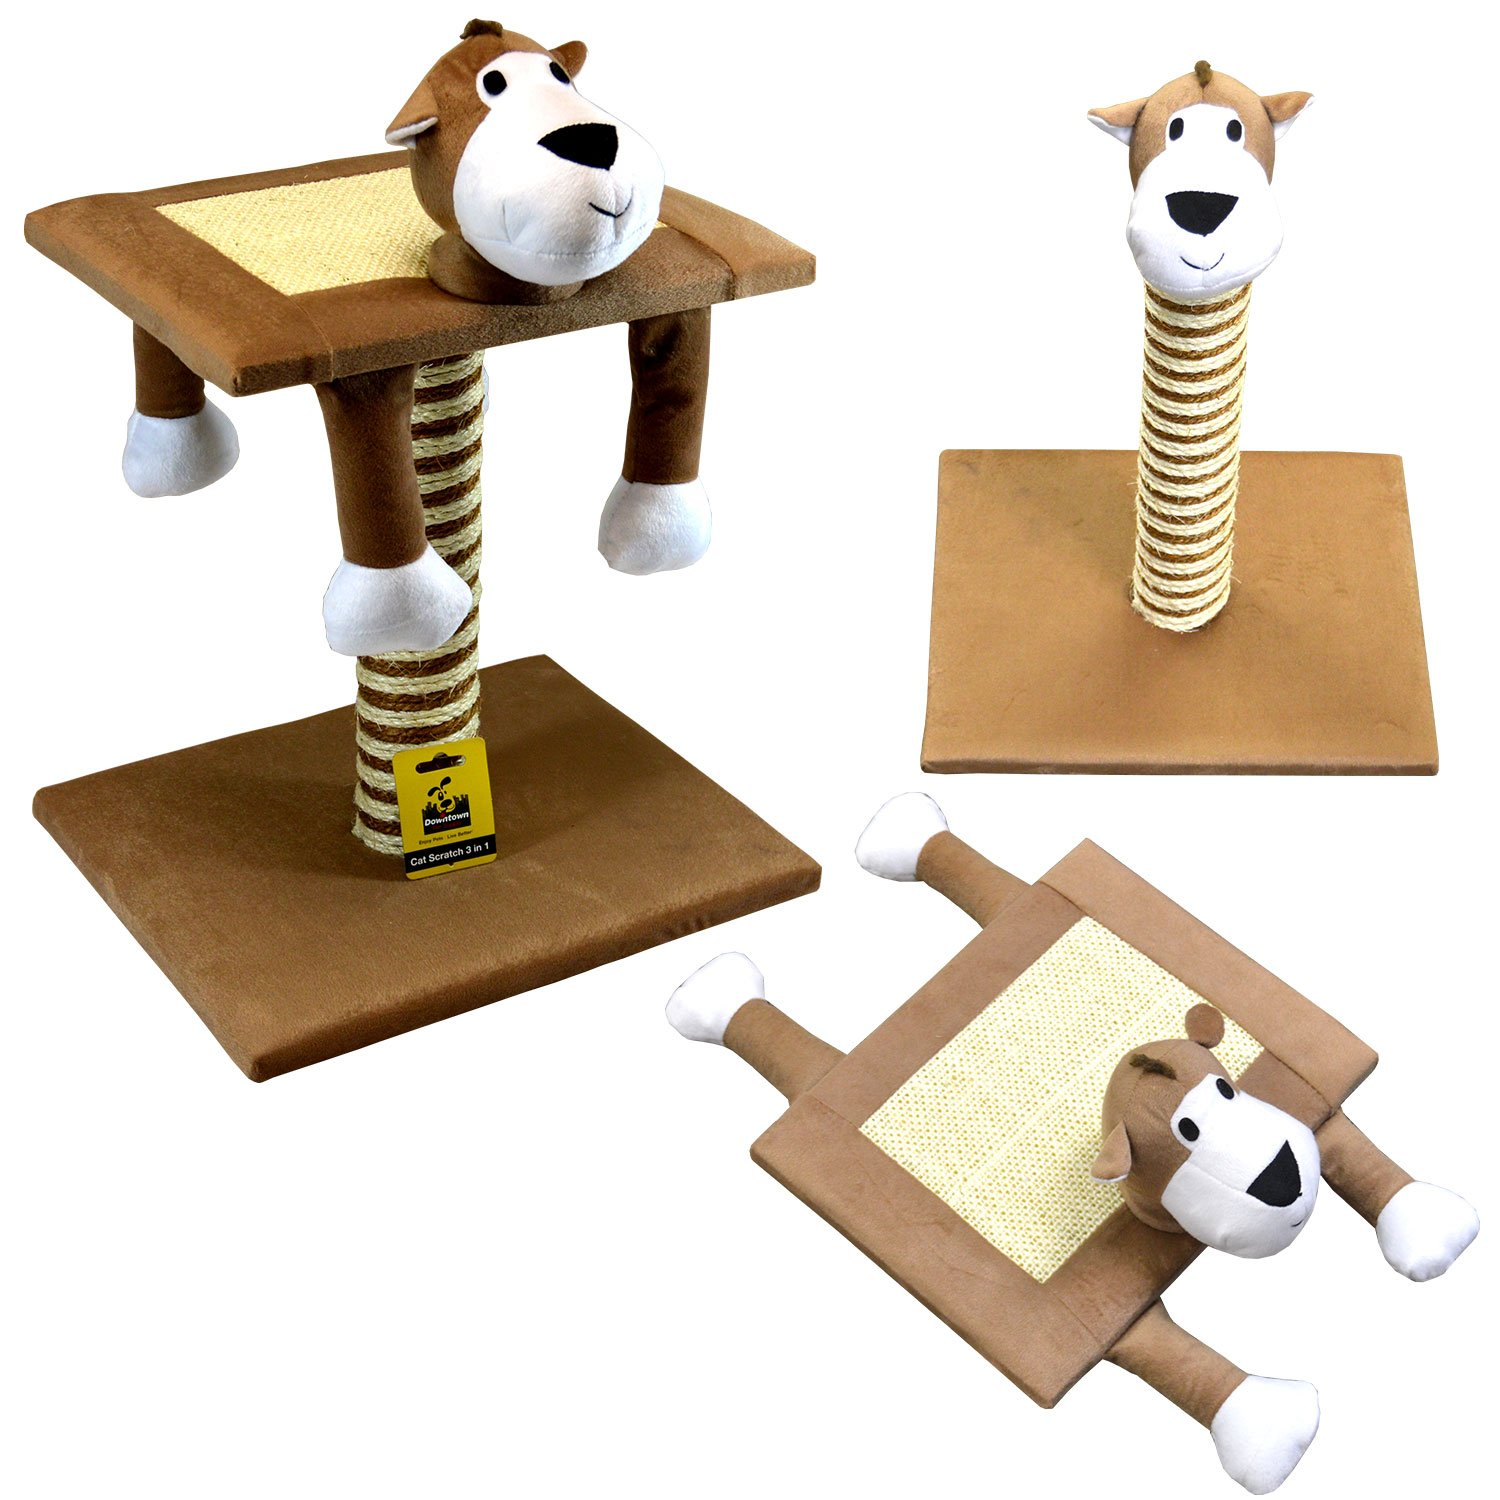 Downtown Pet Supply Deluxe Interactive Cat Scratching Sisal Posts Tree and Exerciser for Kitty, Interactive Cat Toys… – The Cat Site